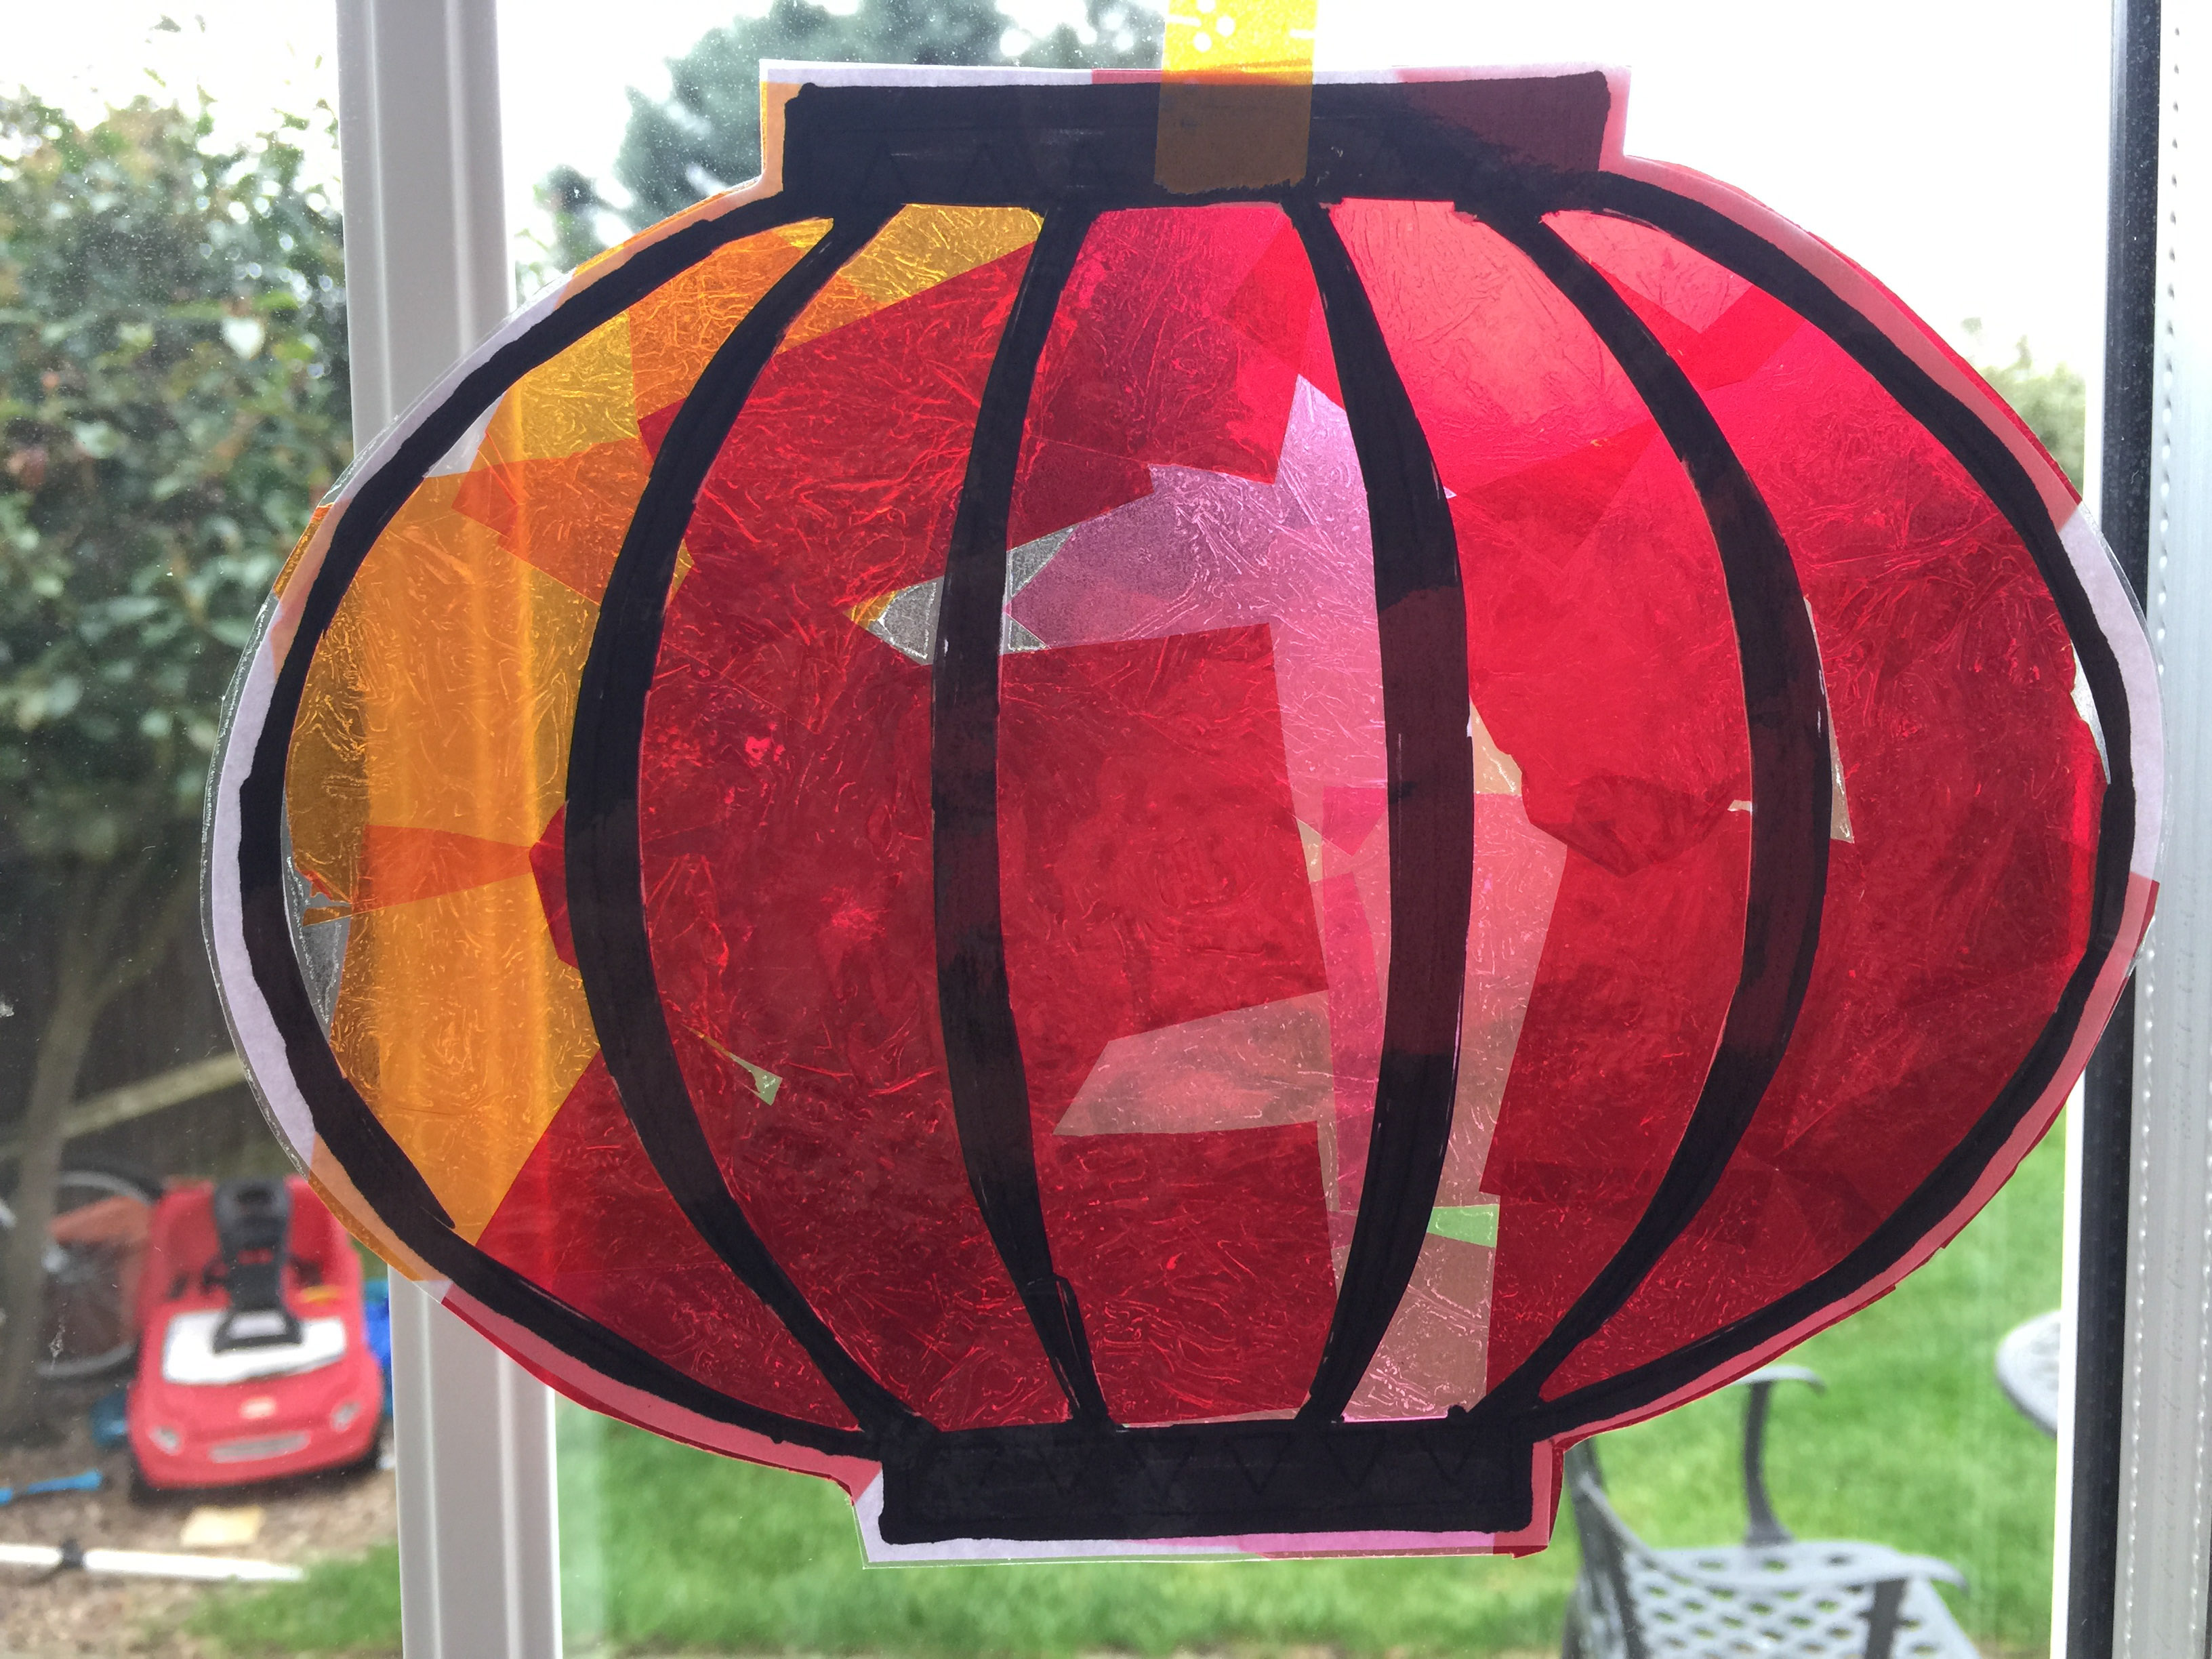 Chinese lantern sun catcher - the-gingerbread-house.co.uk